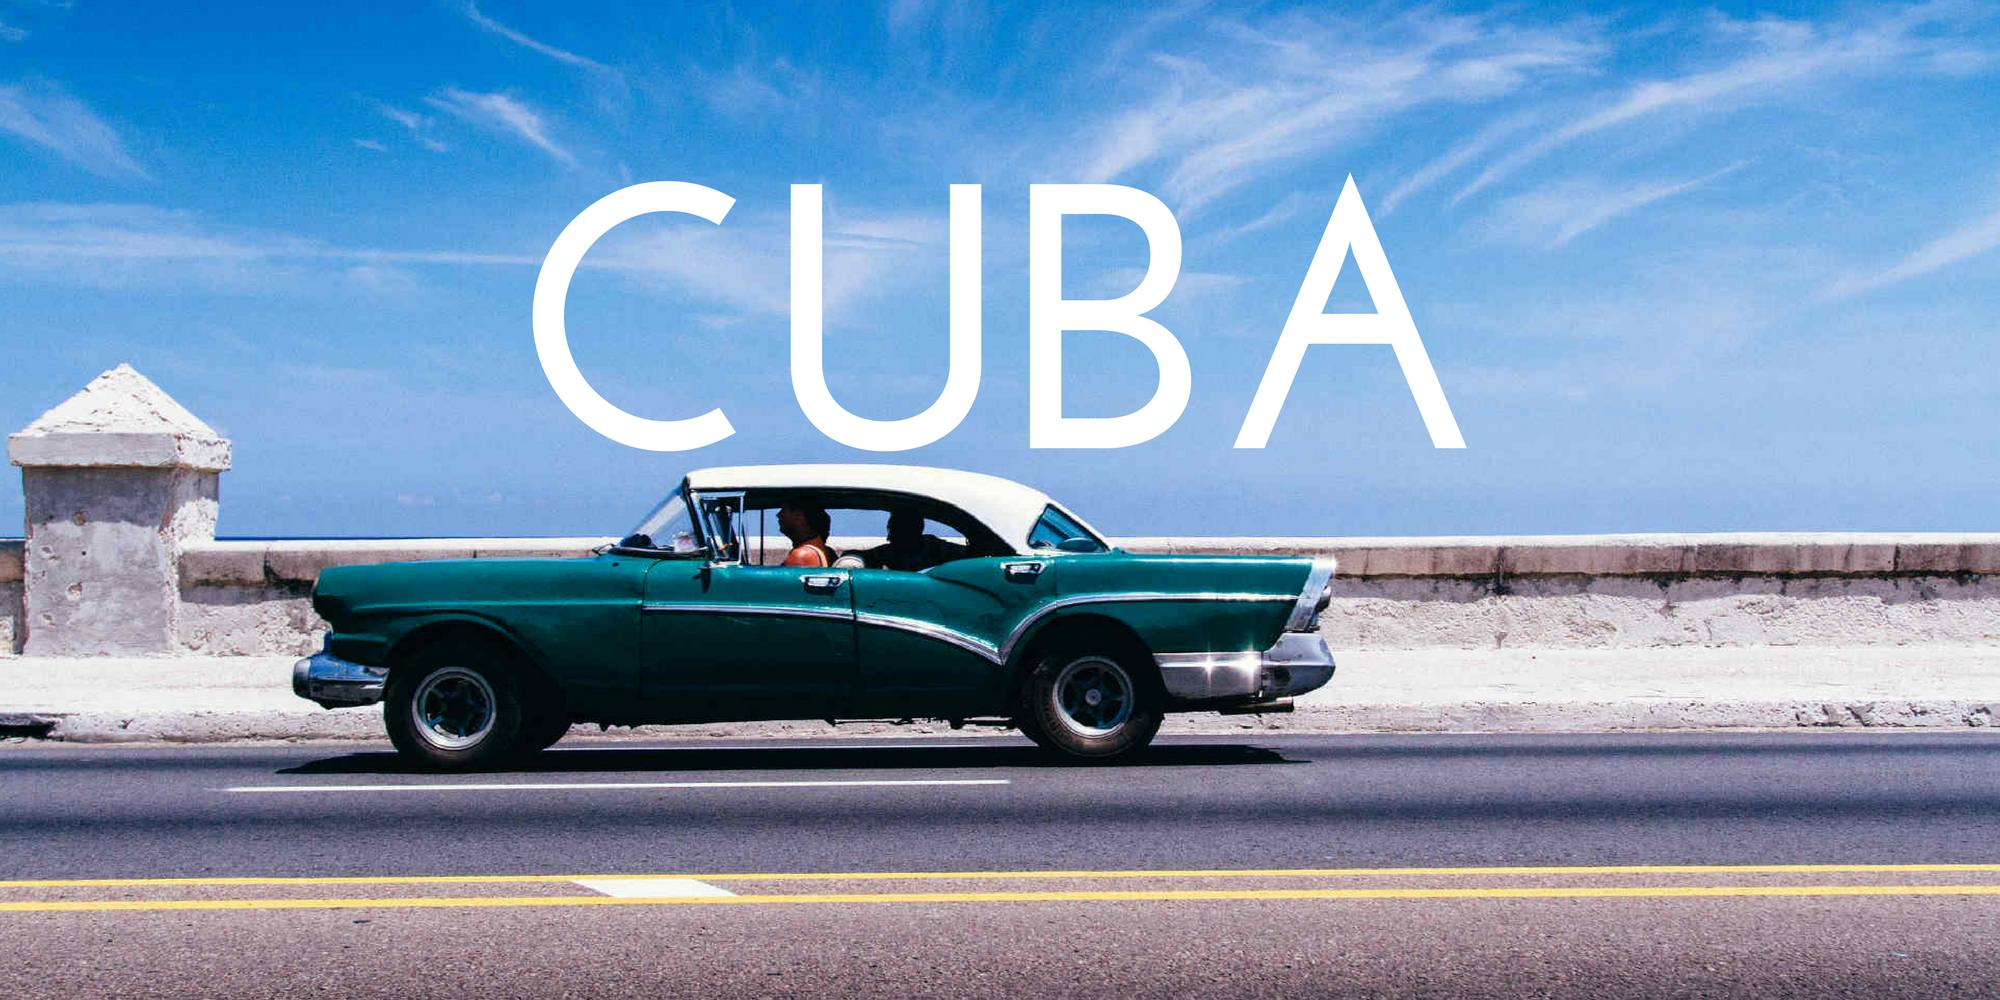 Cuba - Authentic Traveling - Header